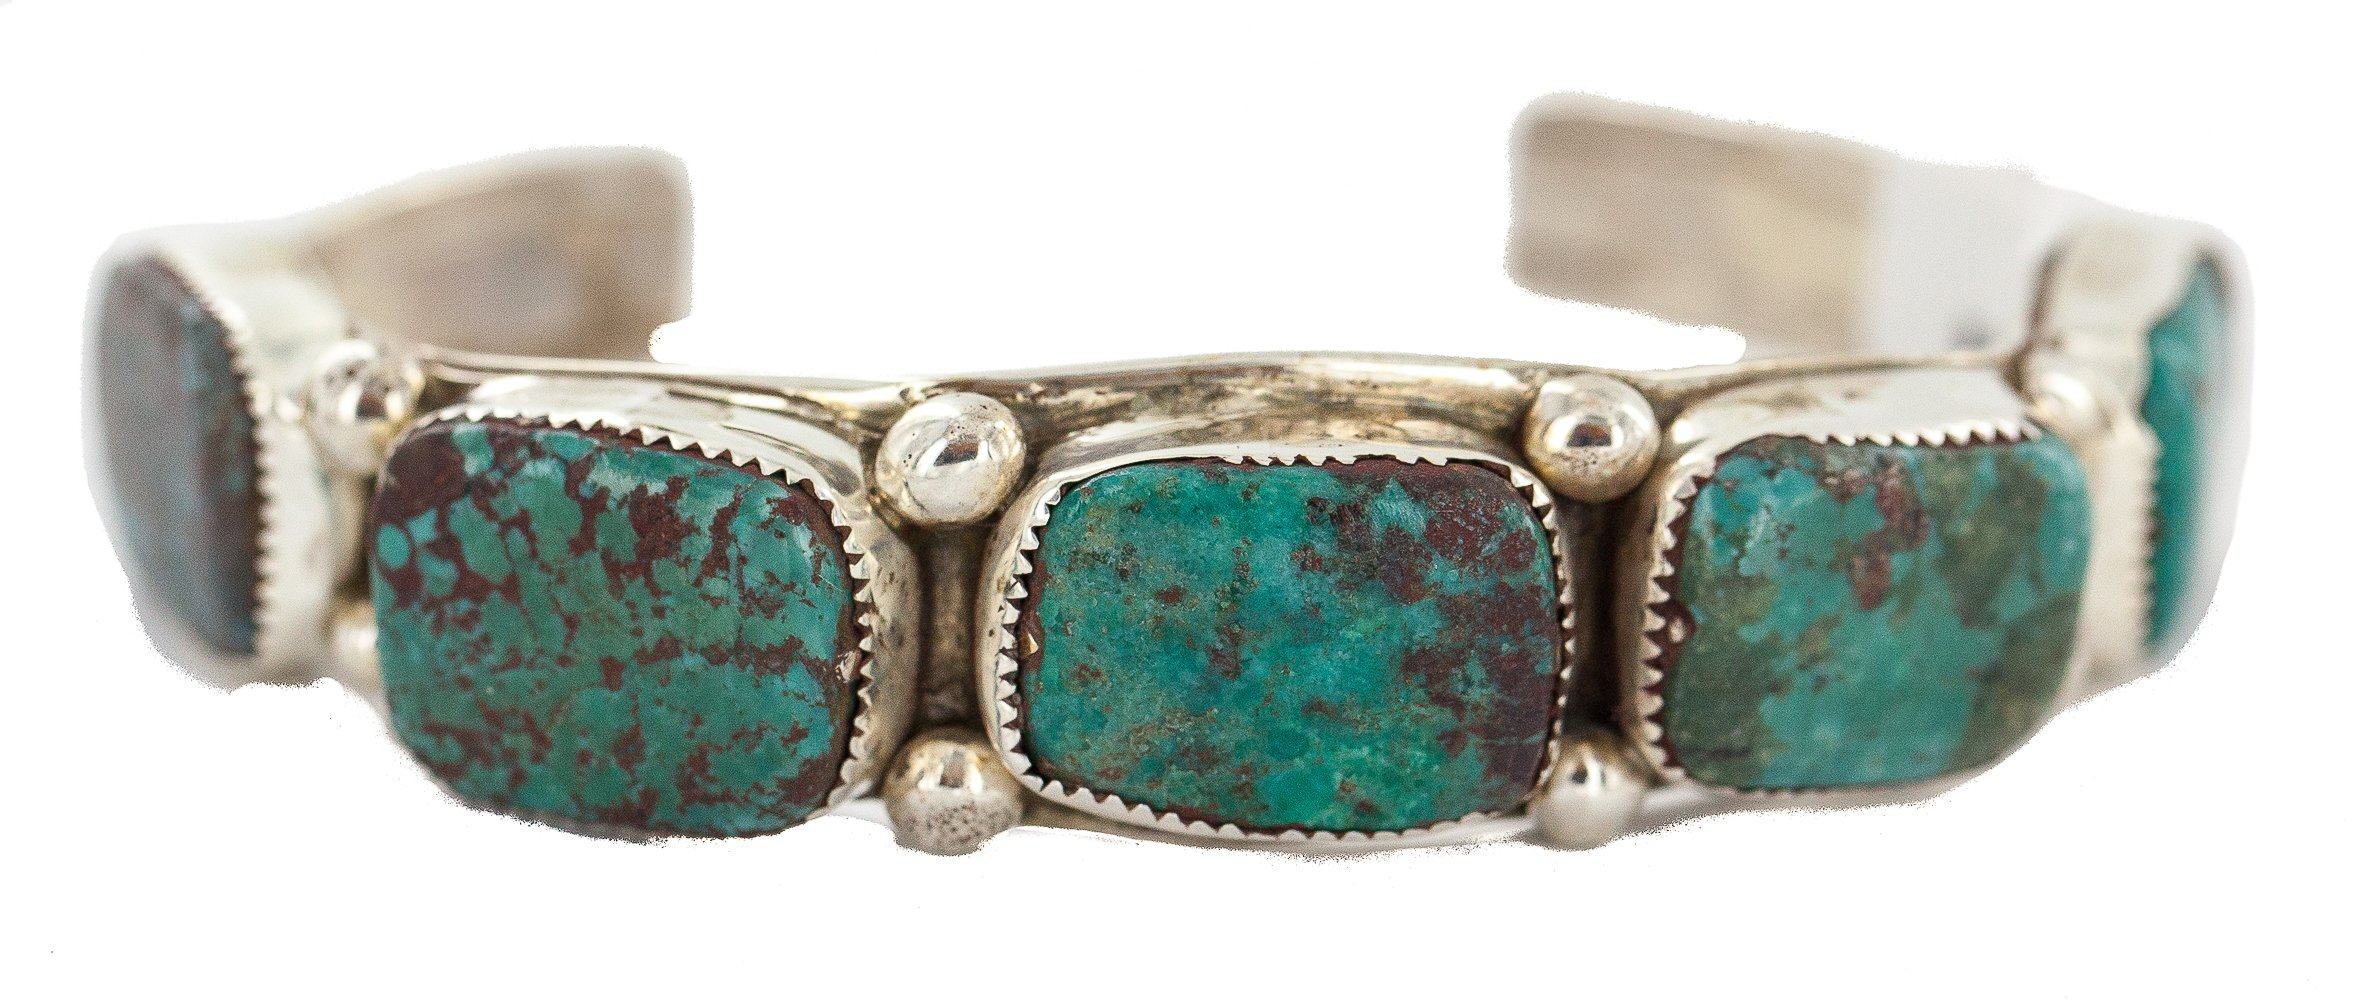 $600 Retail Tag Handmade Authentic Nugget Navajo Silver Made by Robert Little Natural Turquoise Native American Cuff Bracelet